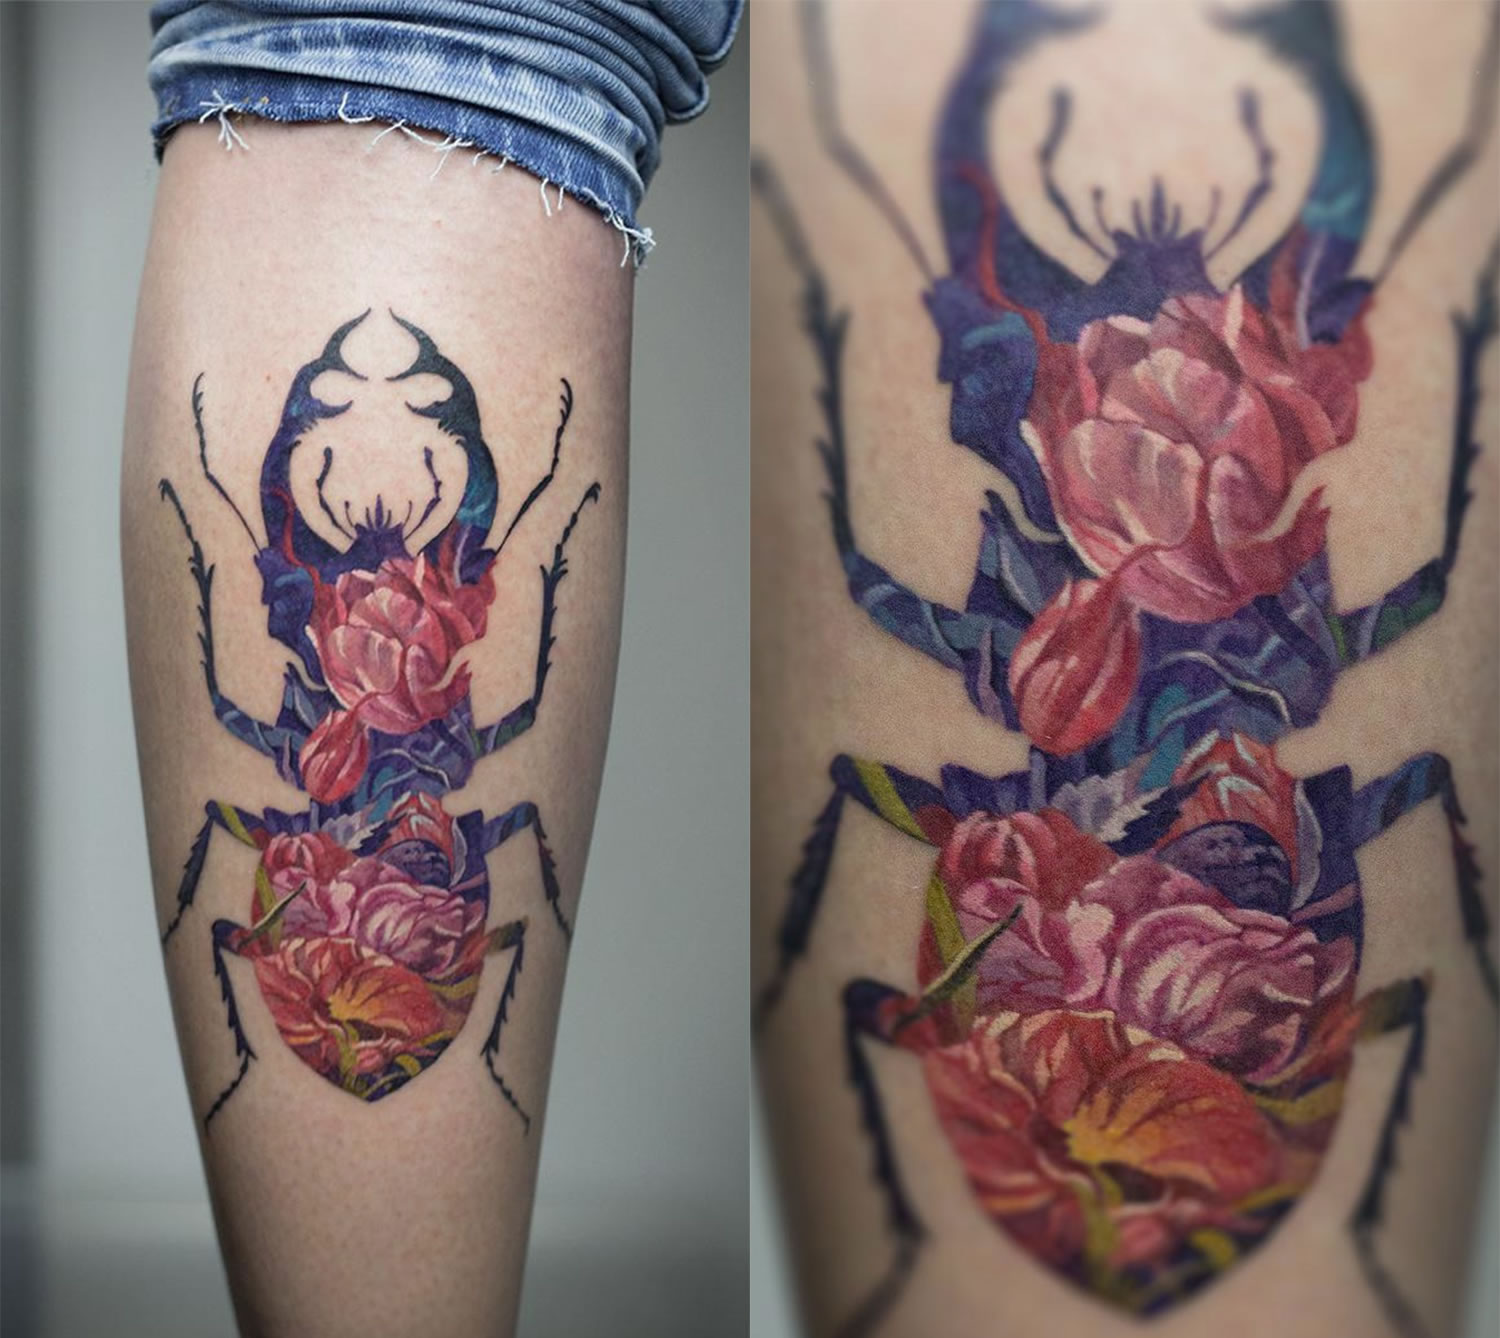 rose beetle, double exposure tattoo